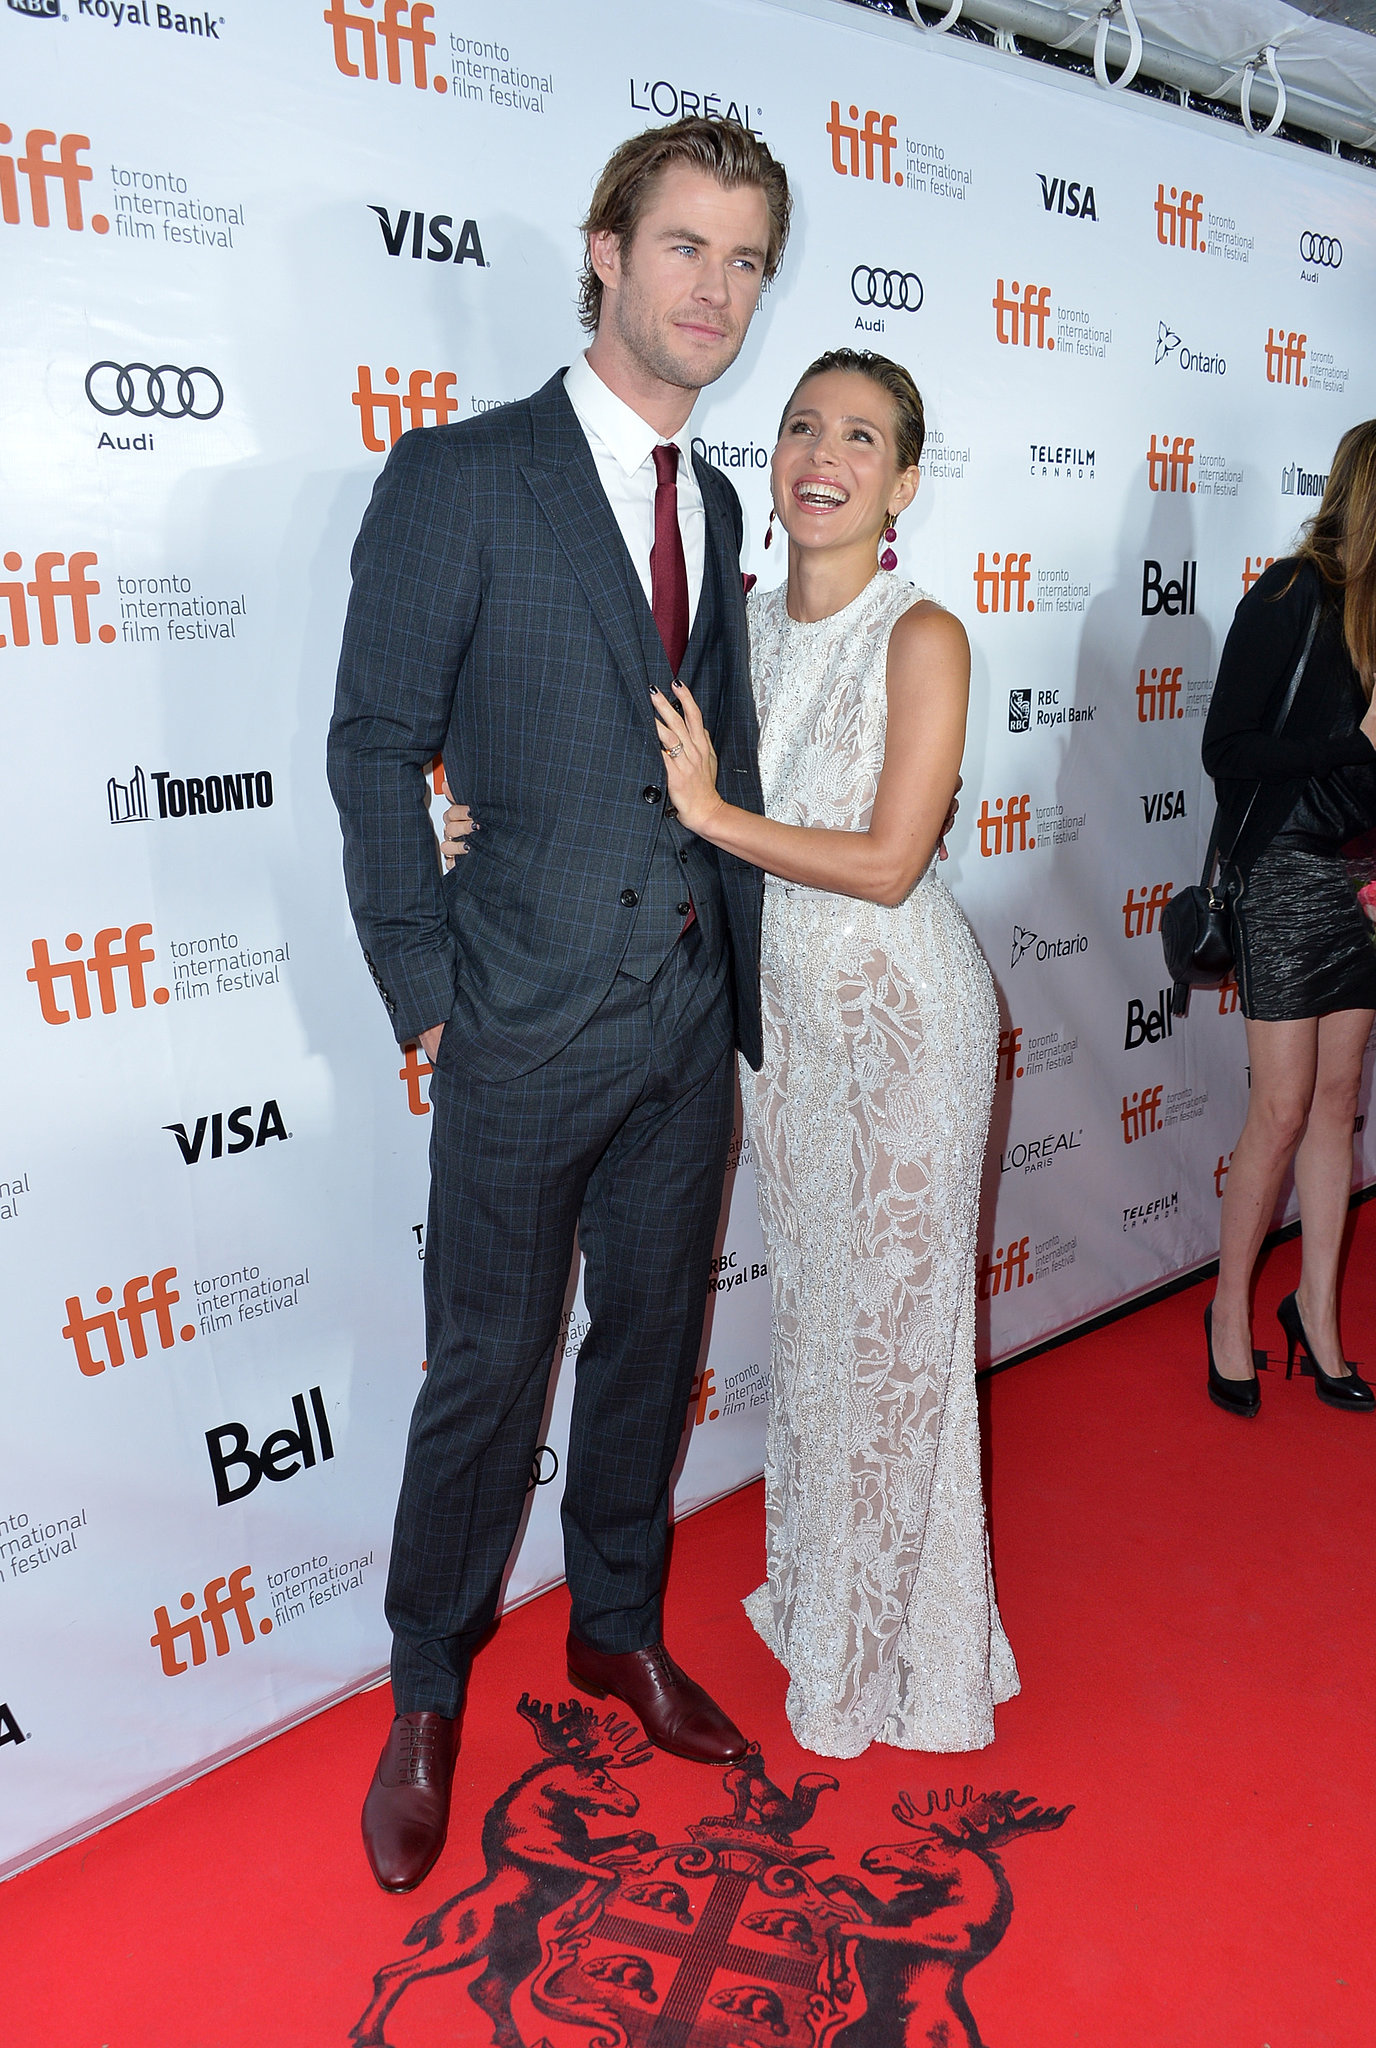 Chris Hemsworth's wife, Elsa Pataky, accompanied him on the red carpet at his Rush premiere.